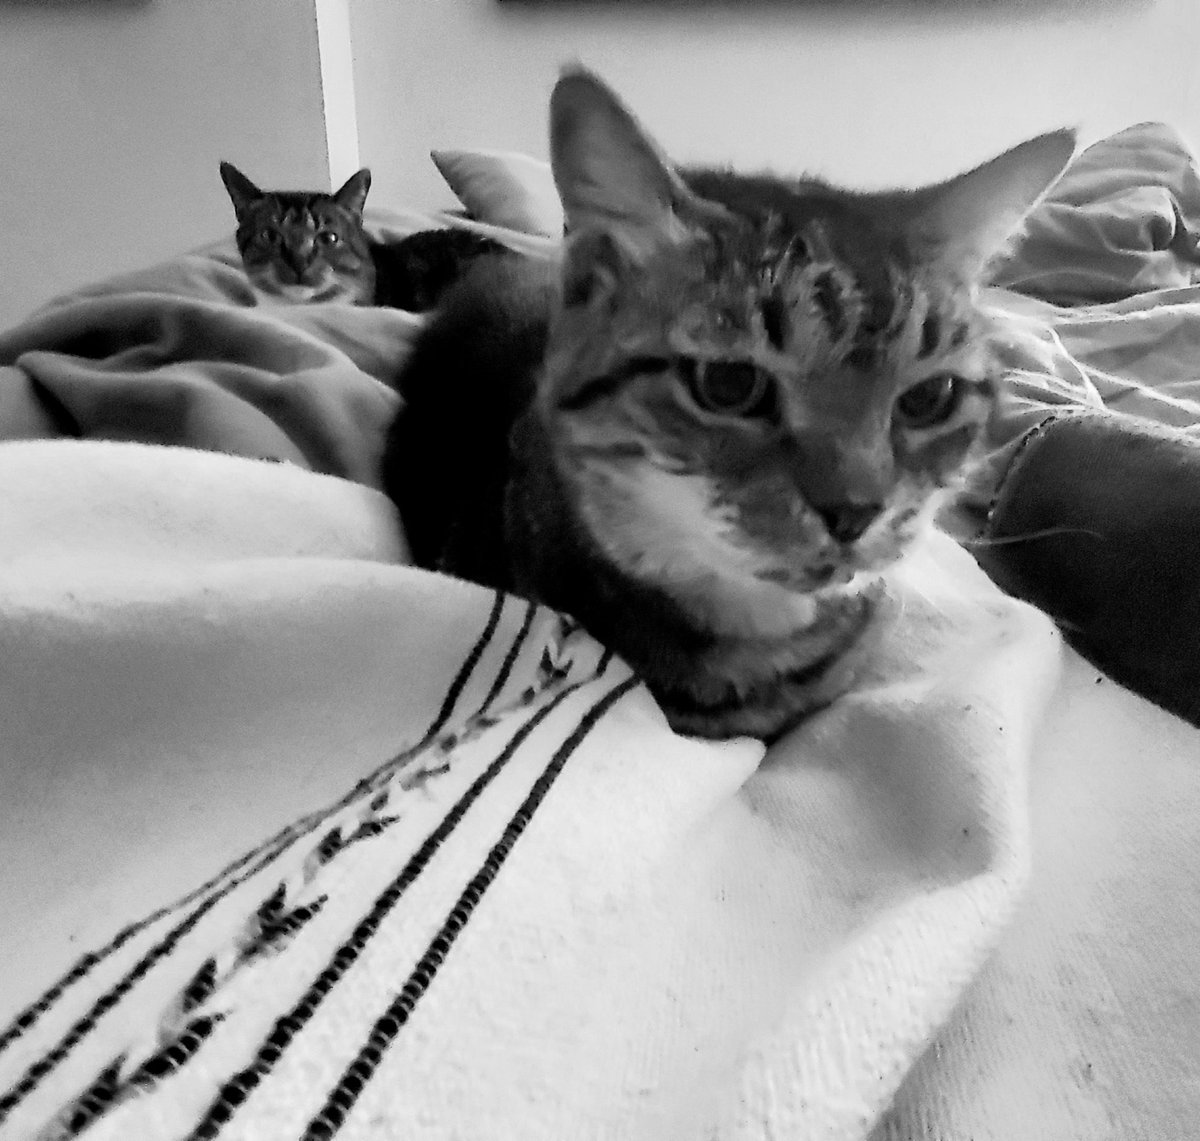 Mickey who is 20 and Bell the cat in the background who is 4 being cuddlebugs #Caturday